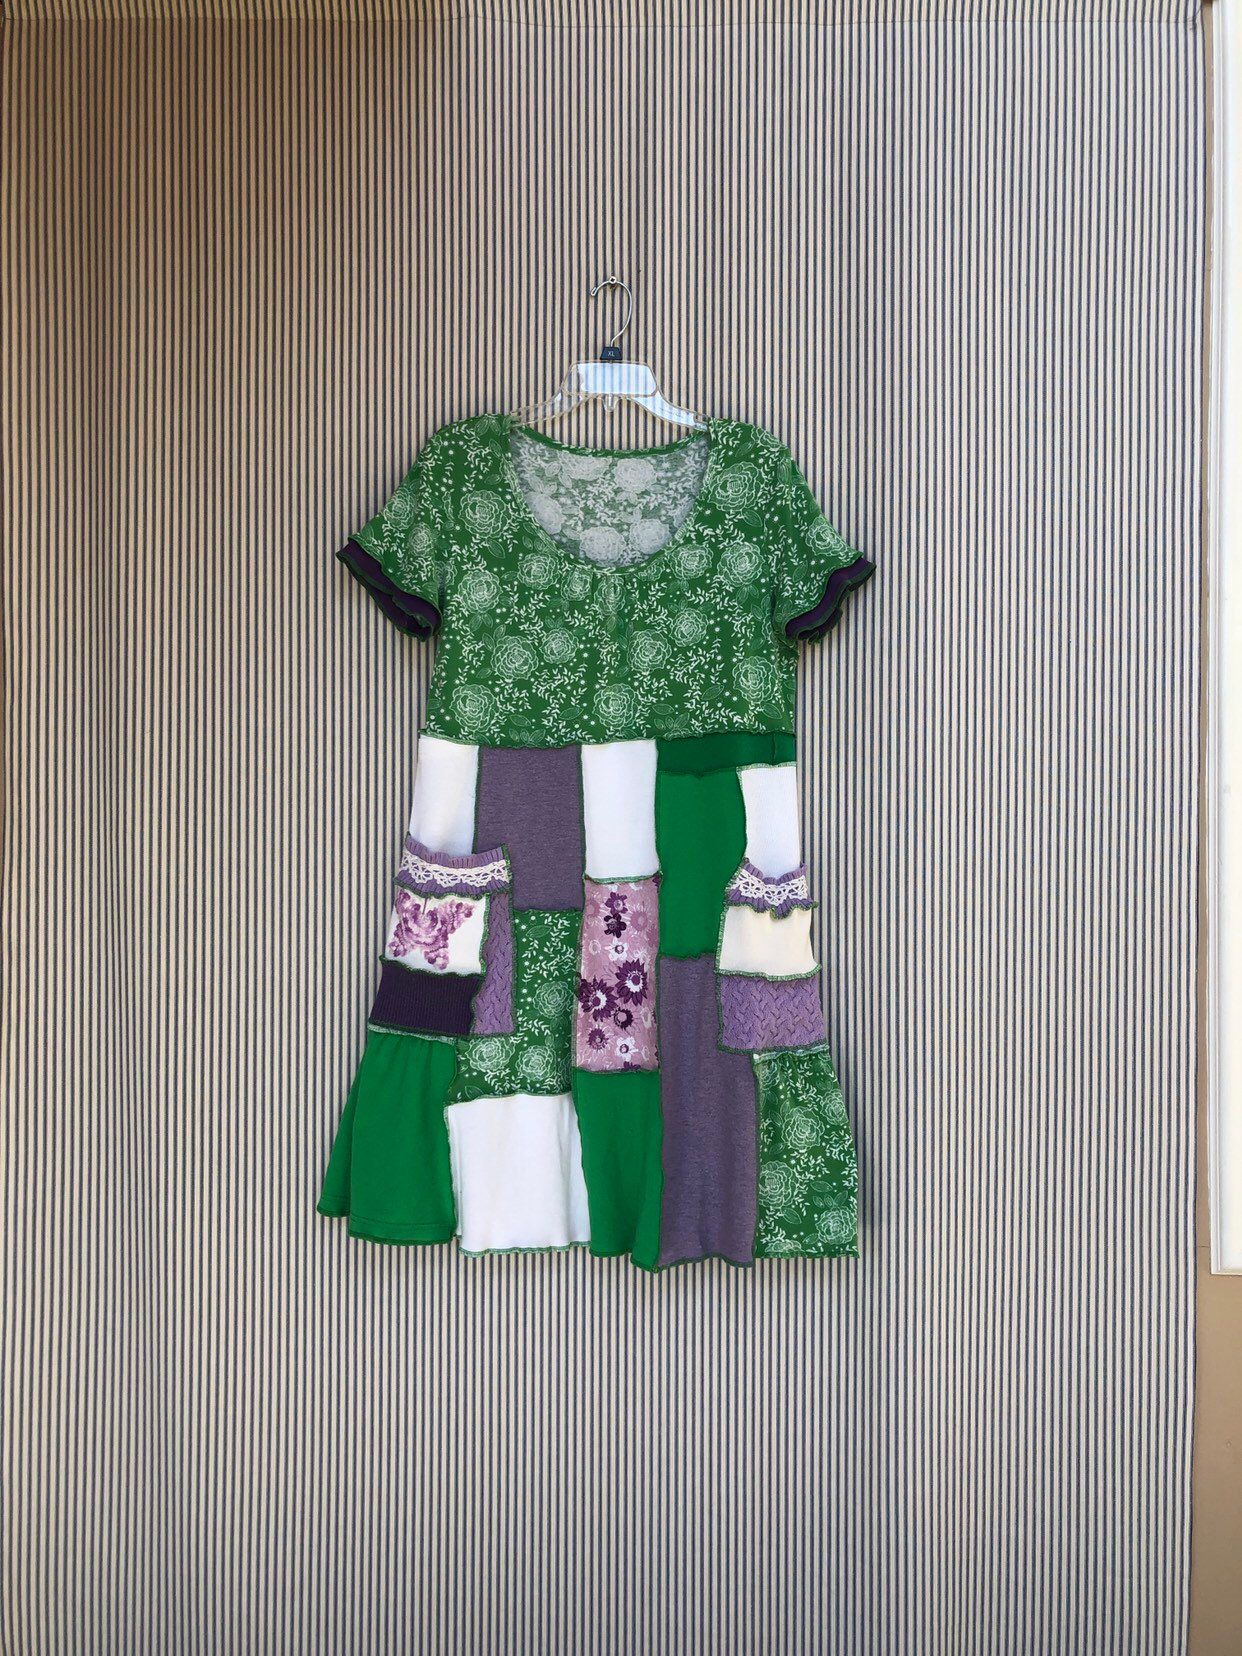 d617a341b6c Excited to share this item from my  etsy shop  Upcycled Spring T-Shirt Dress   clothing  women  dress  green  scoop  bohohippie